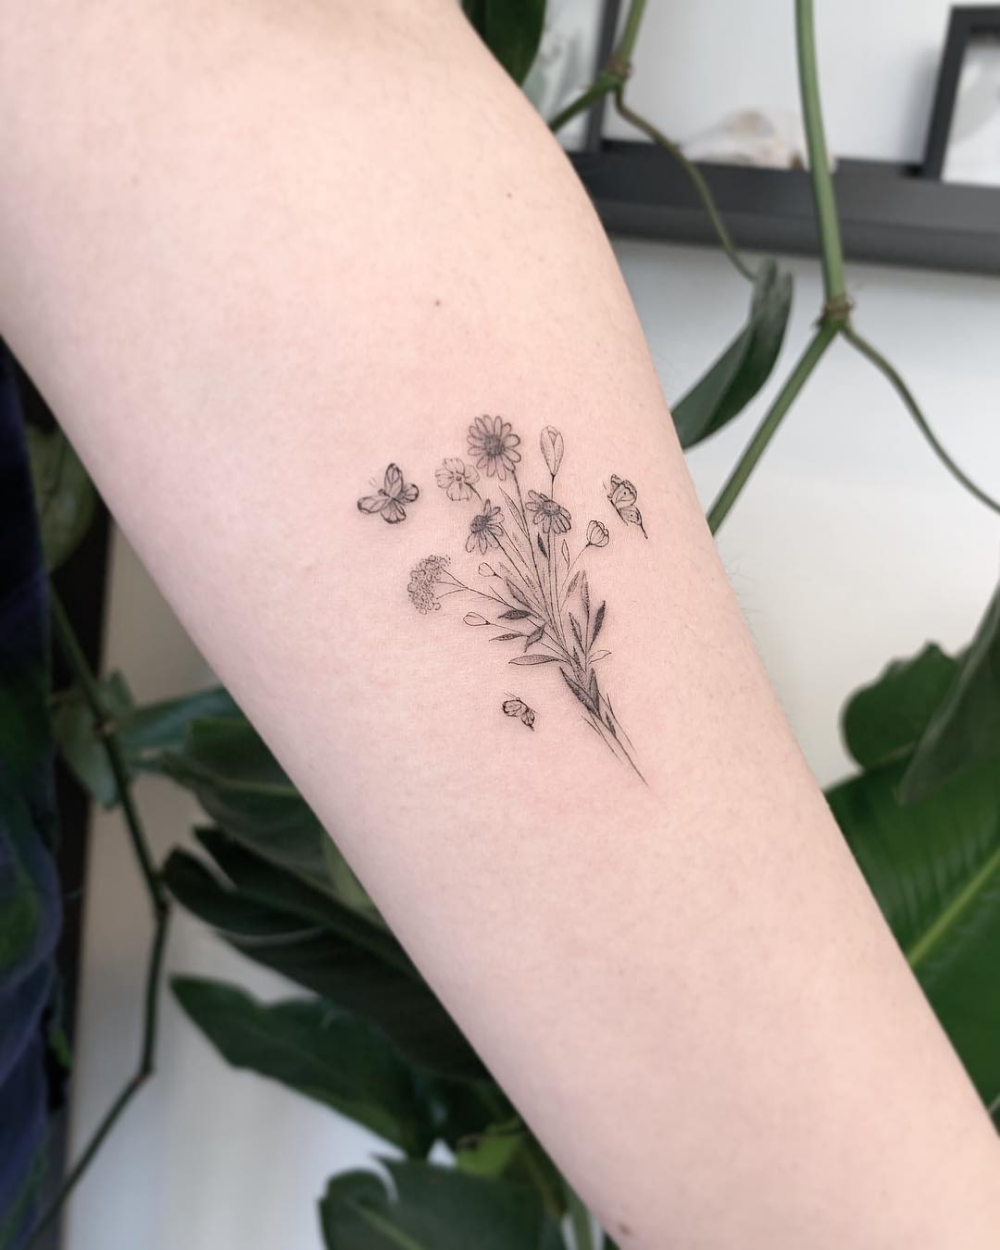 If You Re Looking For A Tiny Minimalist Tattoo Idea In Black Ink Or Color Let These Butter Dainty Flower Tattoos Dainty Tattoos Butterfly With Flowers Tattoo